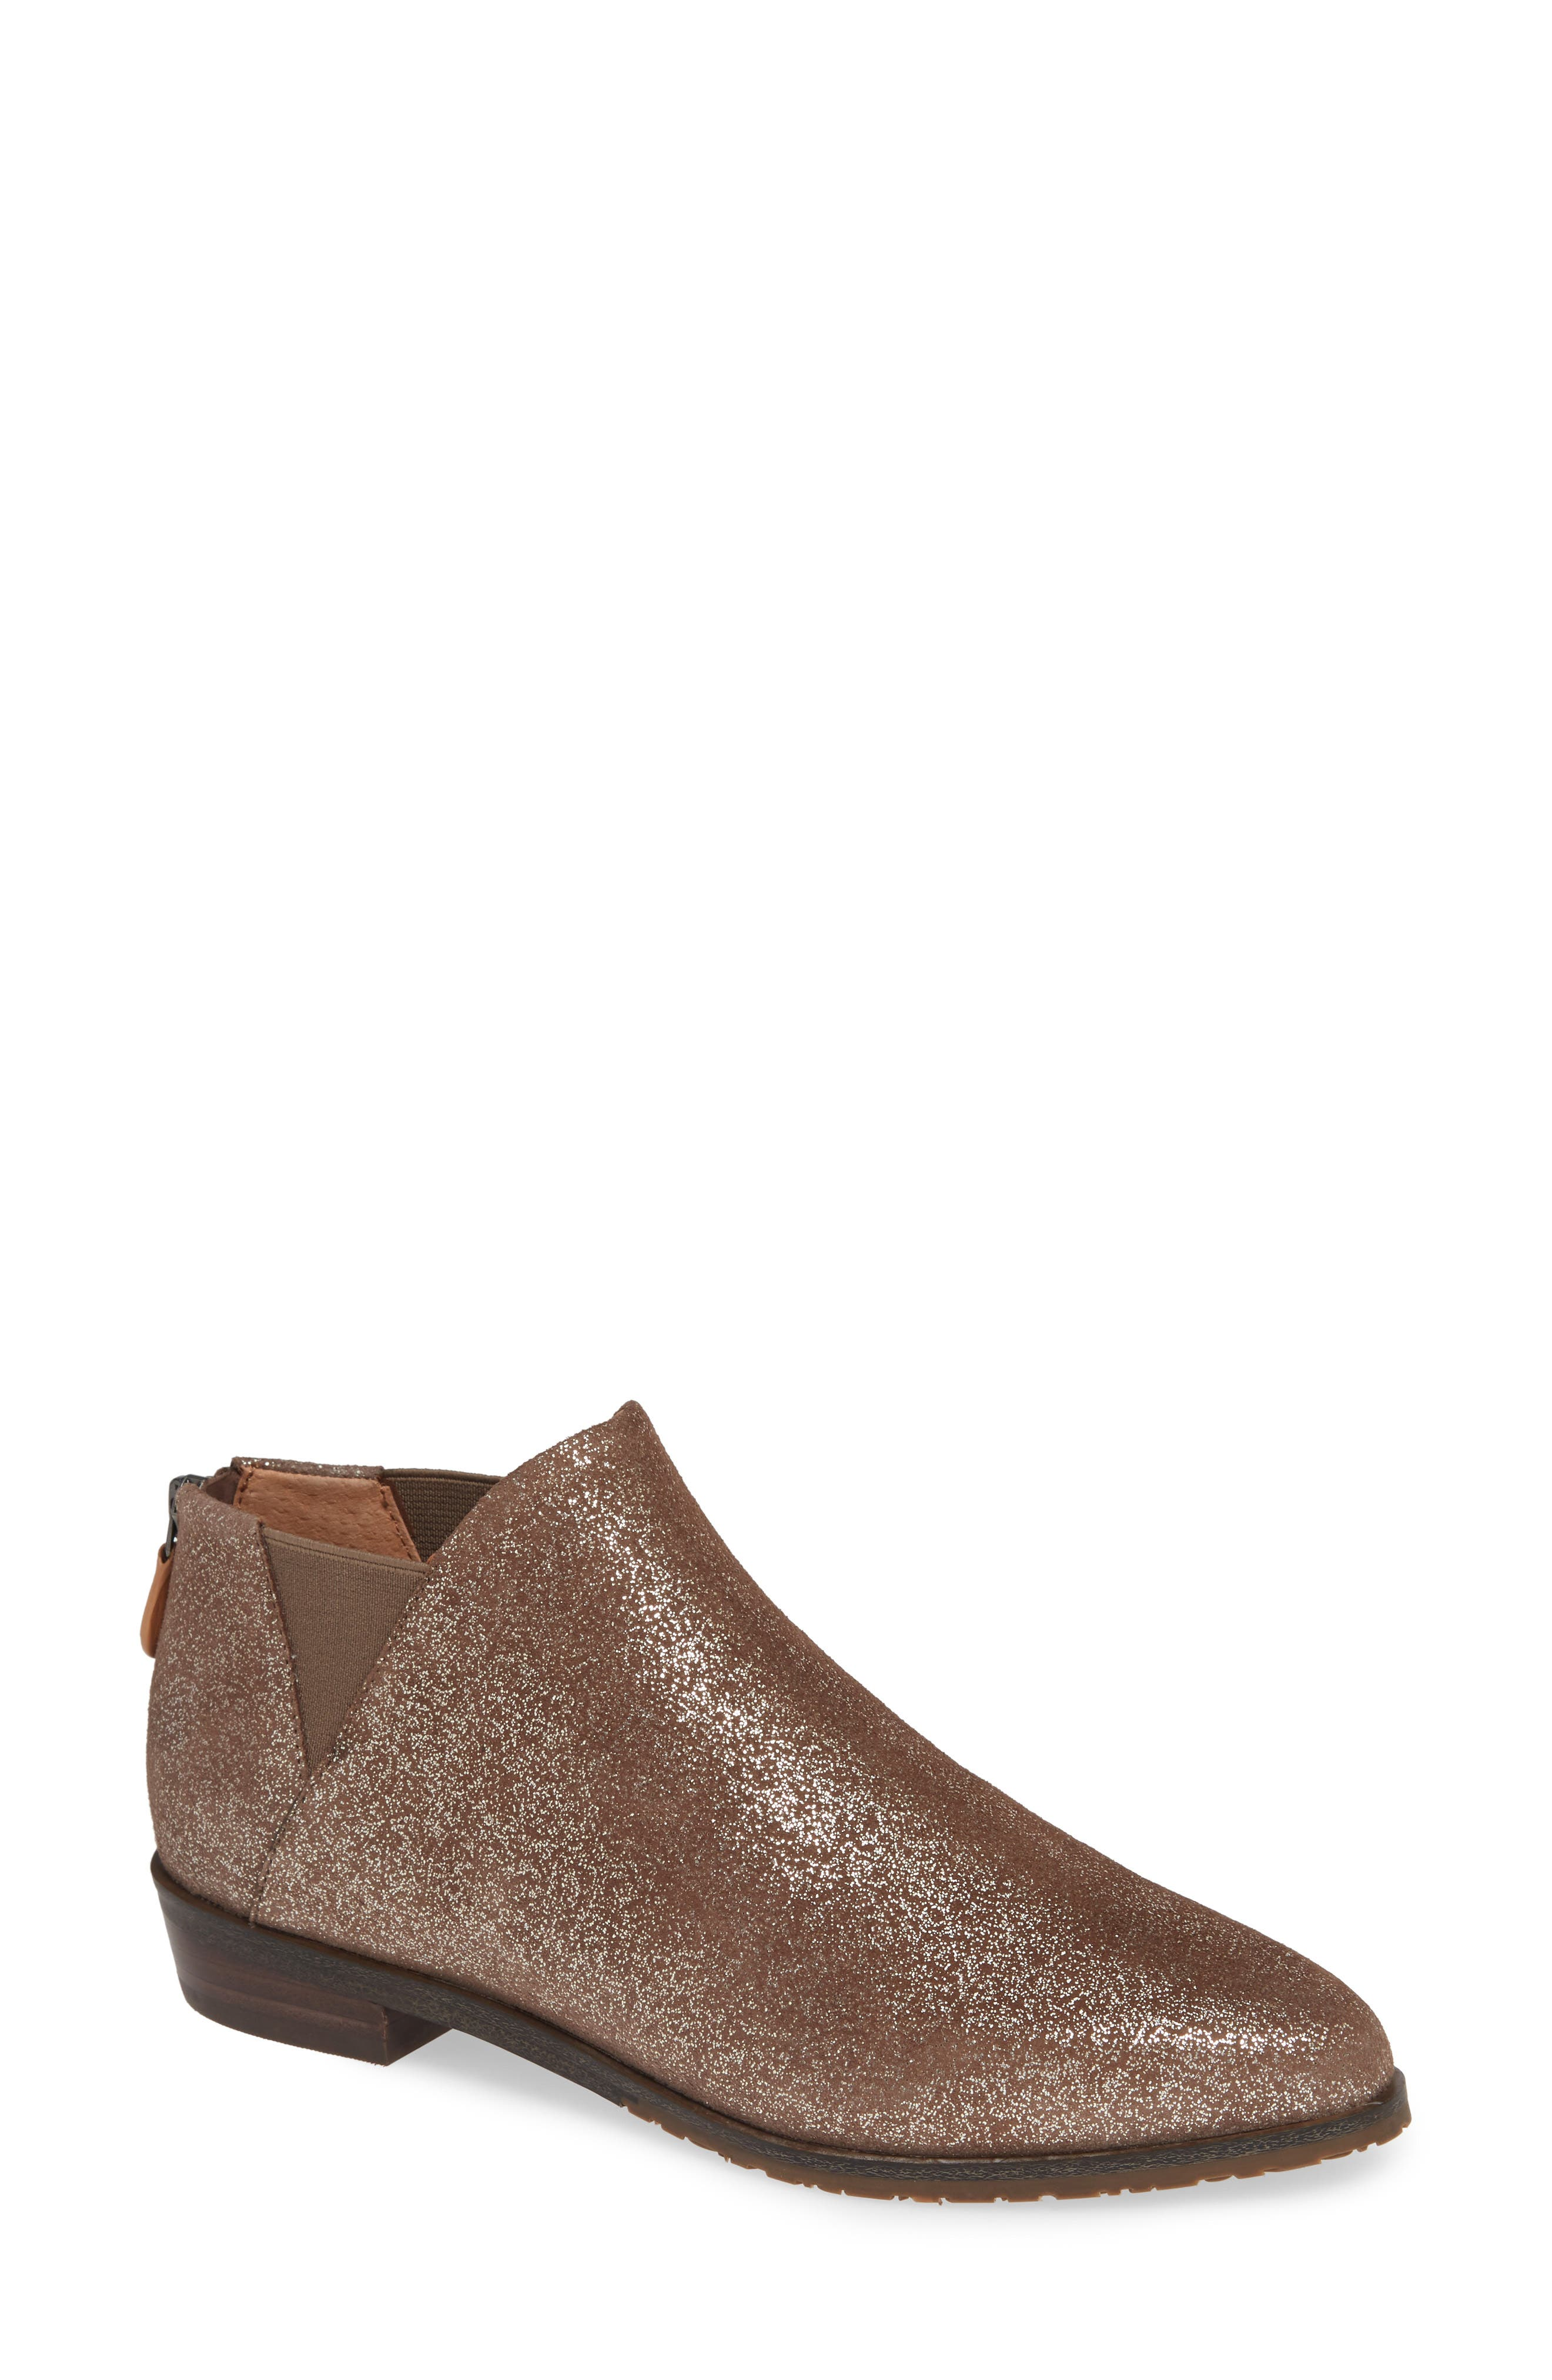 by Kenneth Cole Neptune Chelsea Bootie,                             Main thumbnail 1, color,                             201